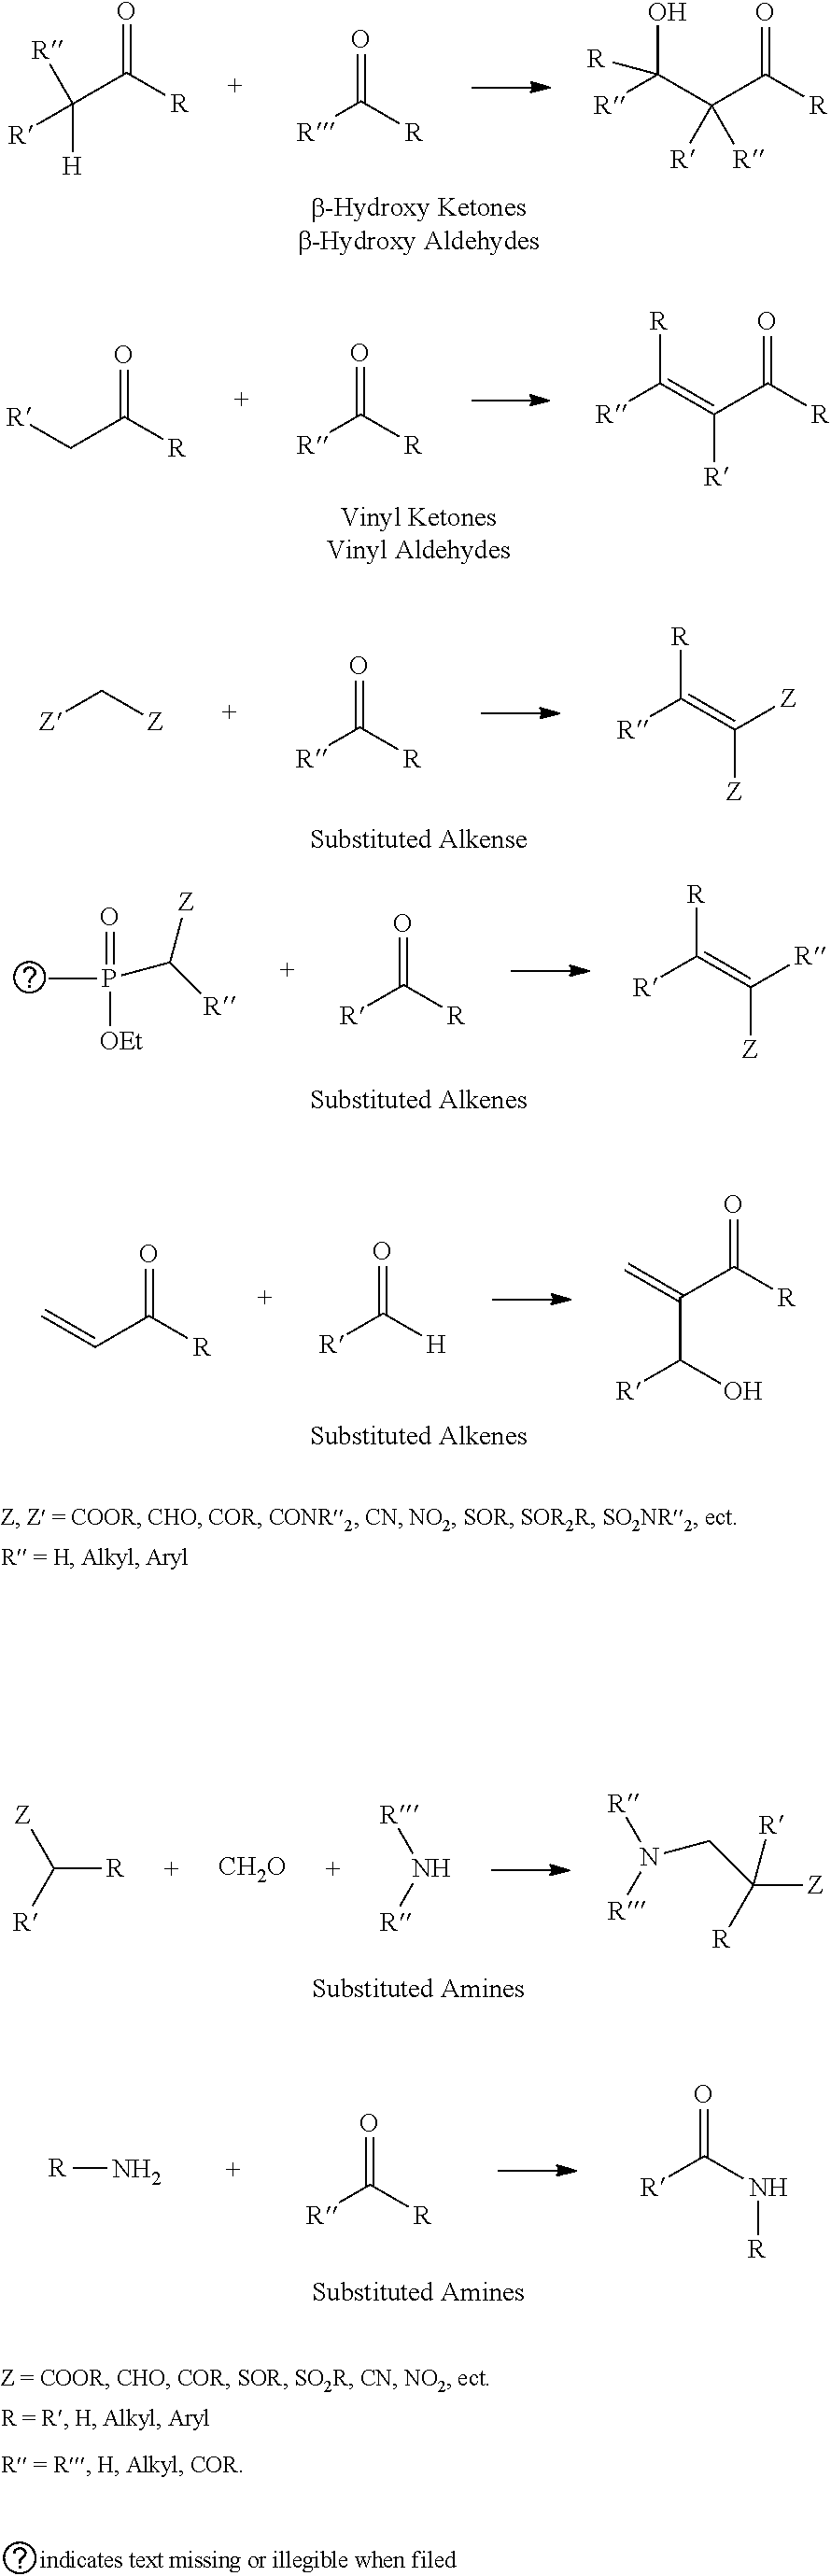 Us20170247688a1 Enzymatic Encoding Methods For Efficient Synthesis Seven Segment Display Circuit With The 4511 Decoder And 4029 Figure 20170831 C00039